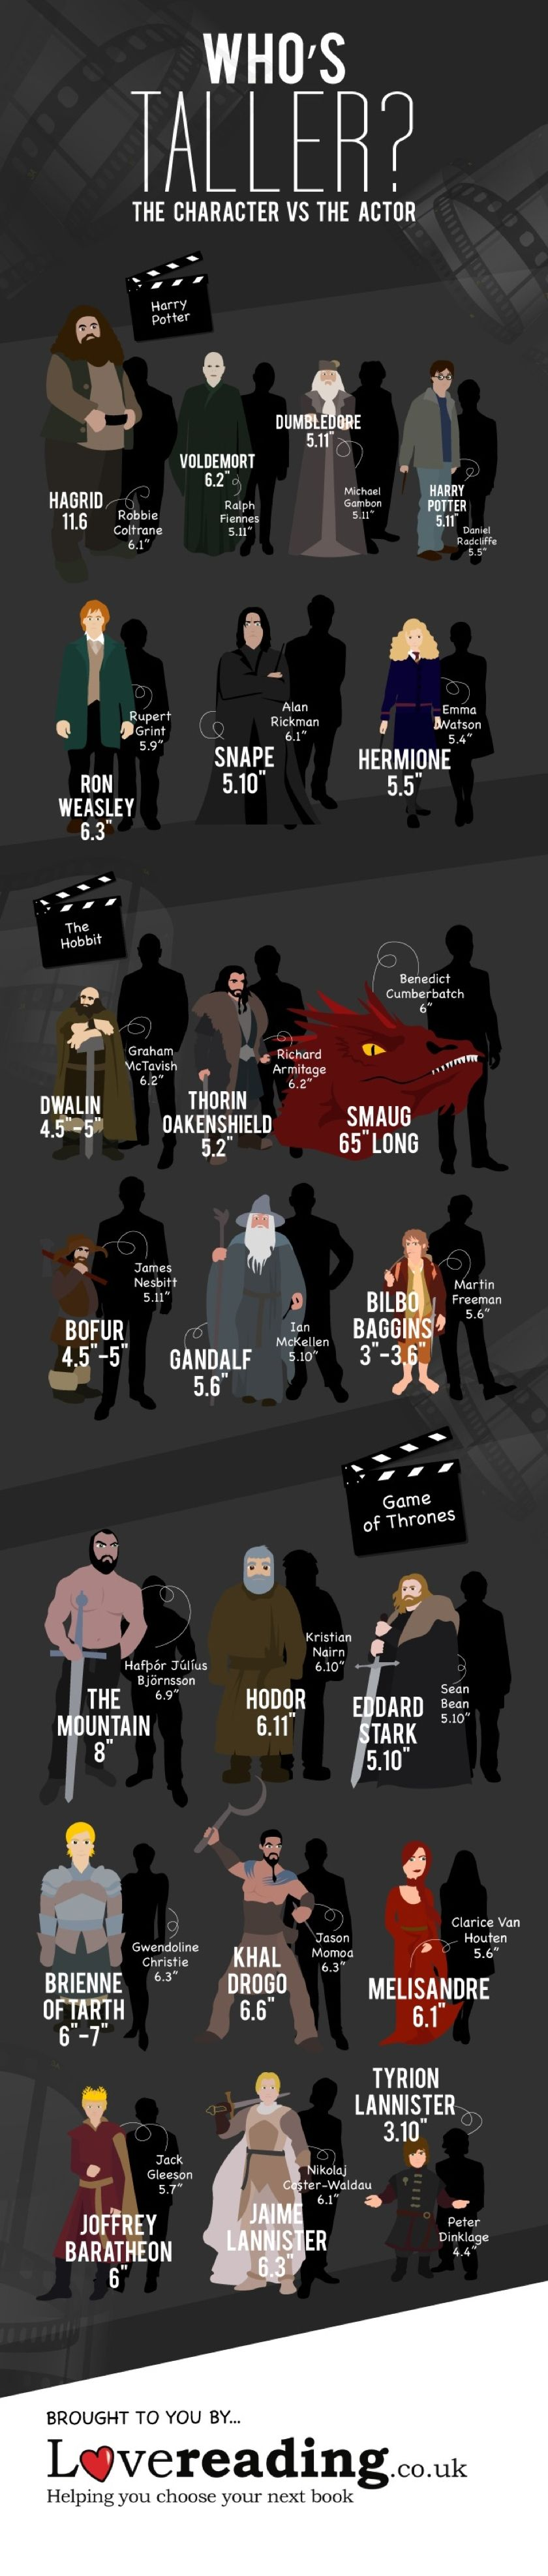 Who is taller: the book character or the actor playing it #infographic